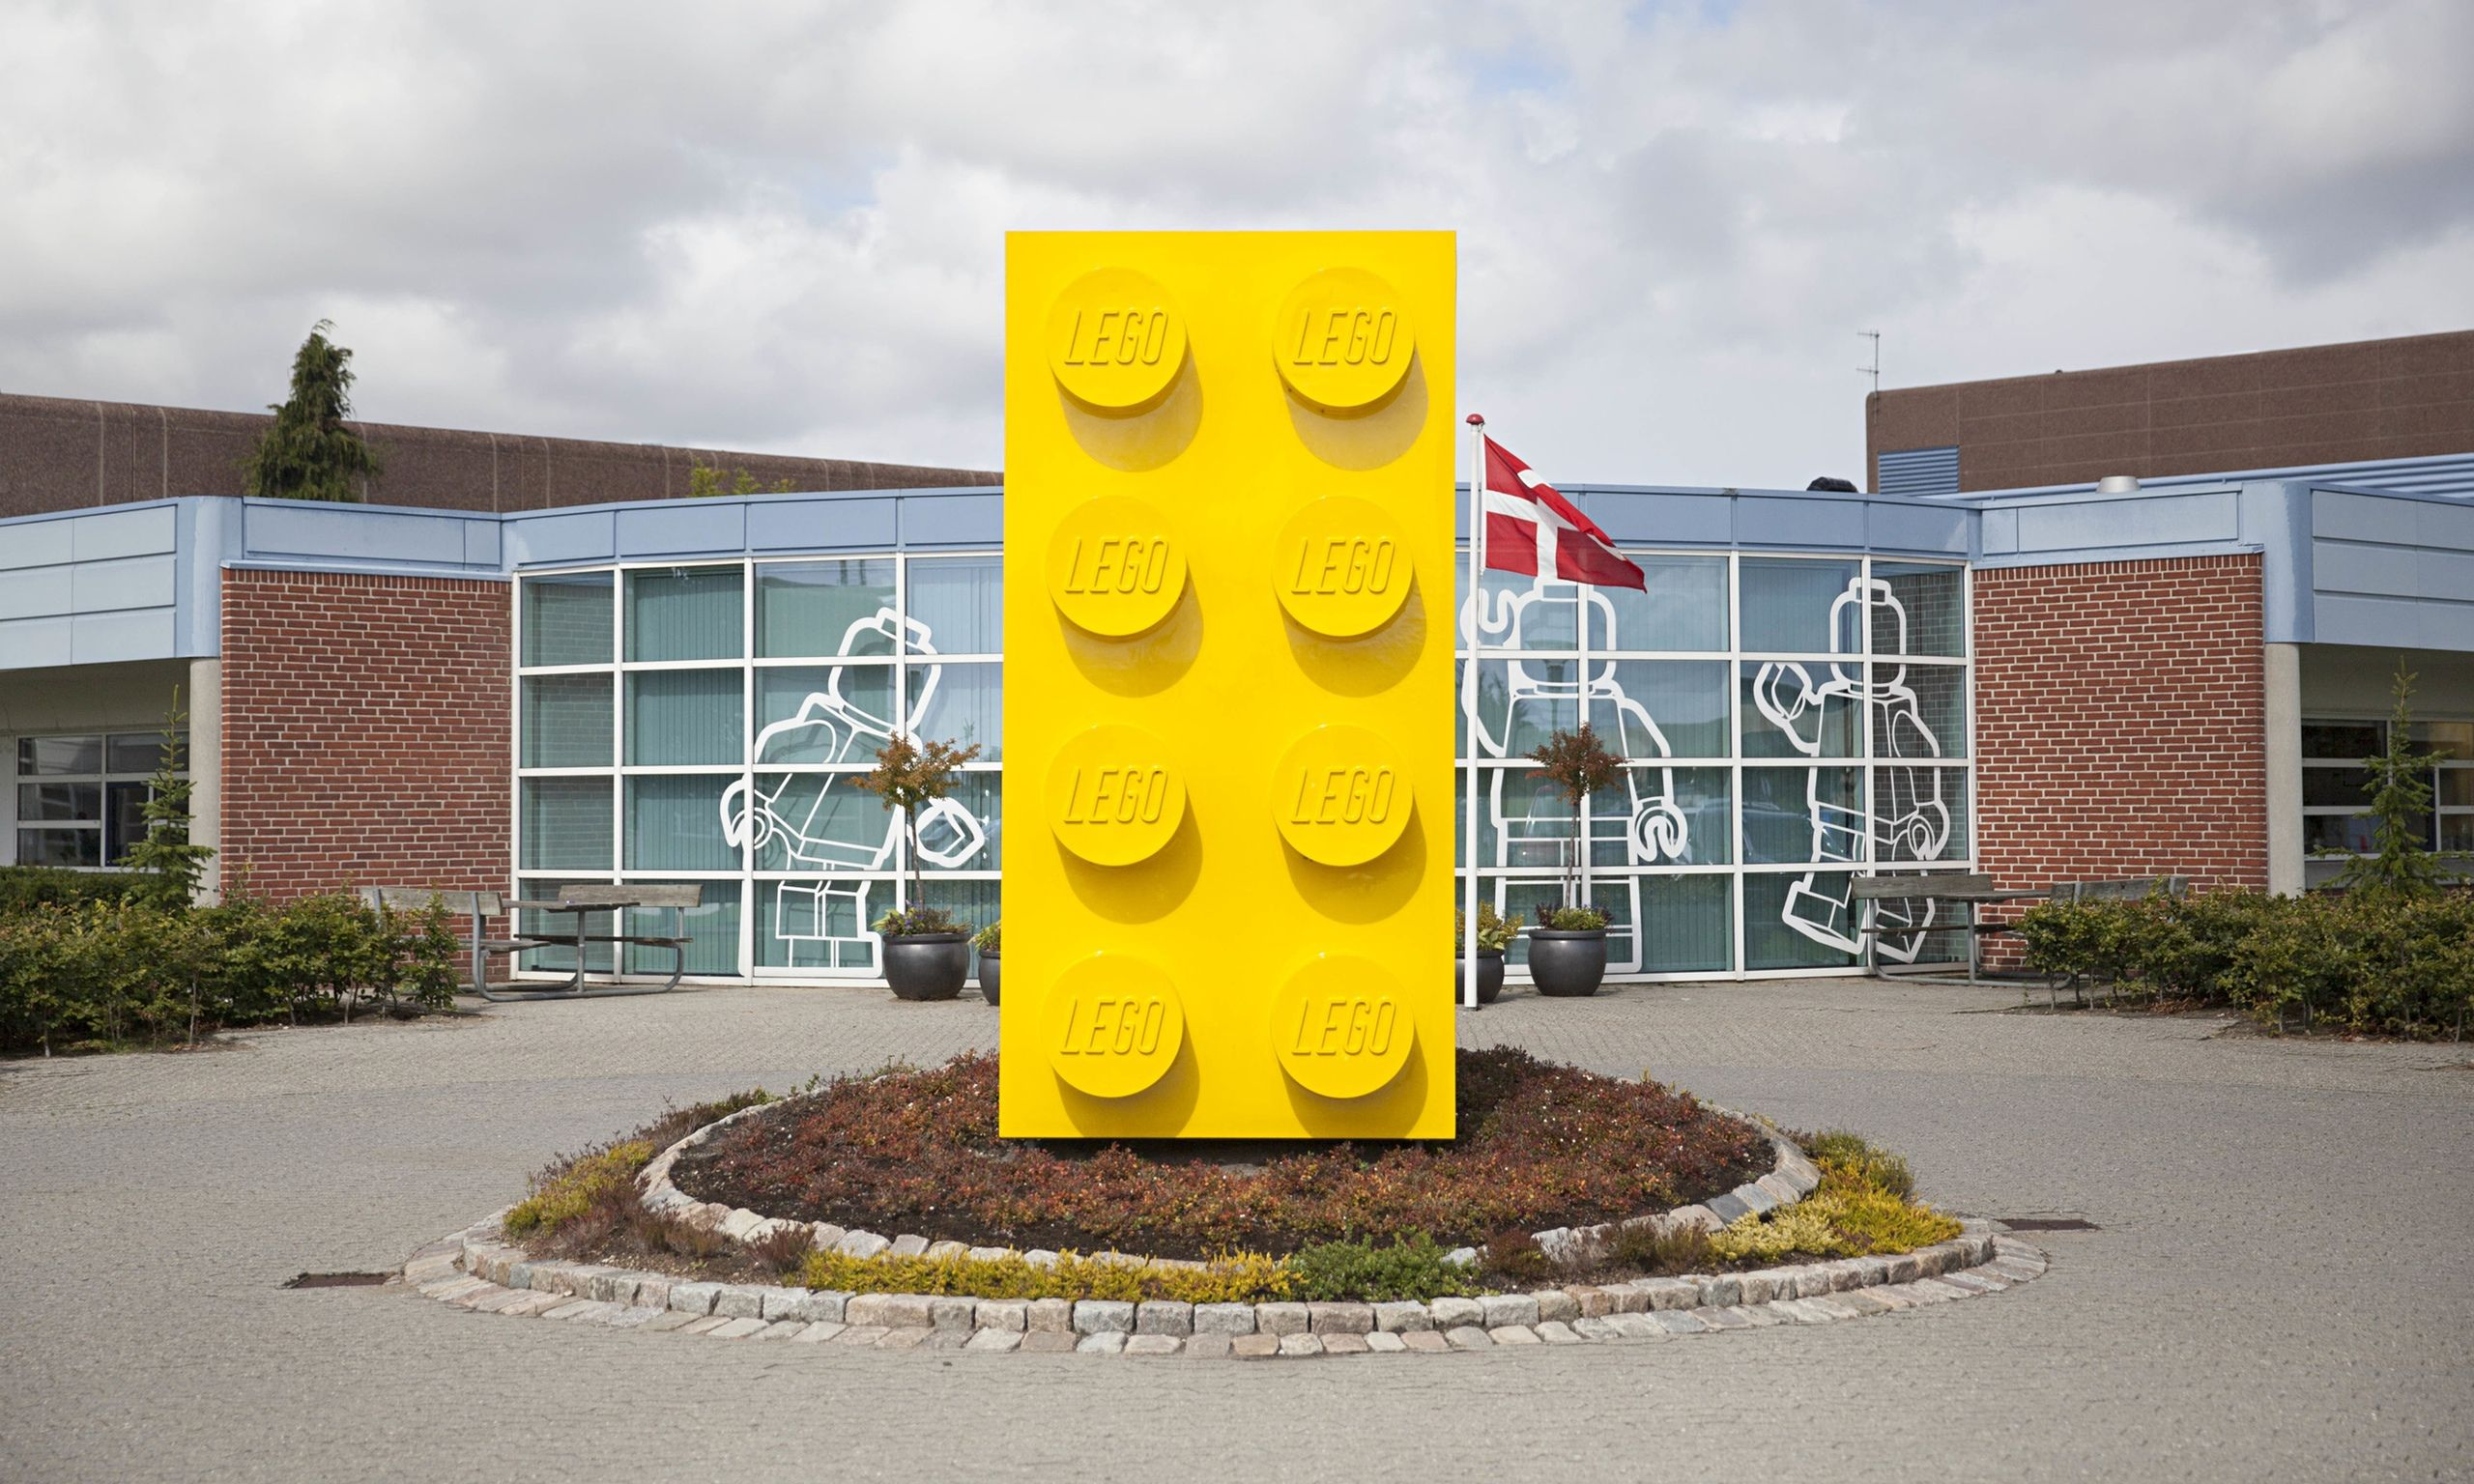 to the real Lego land rebuilding the brand brick